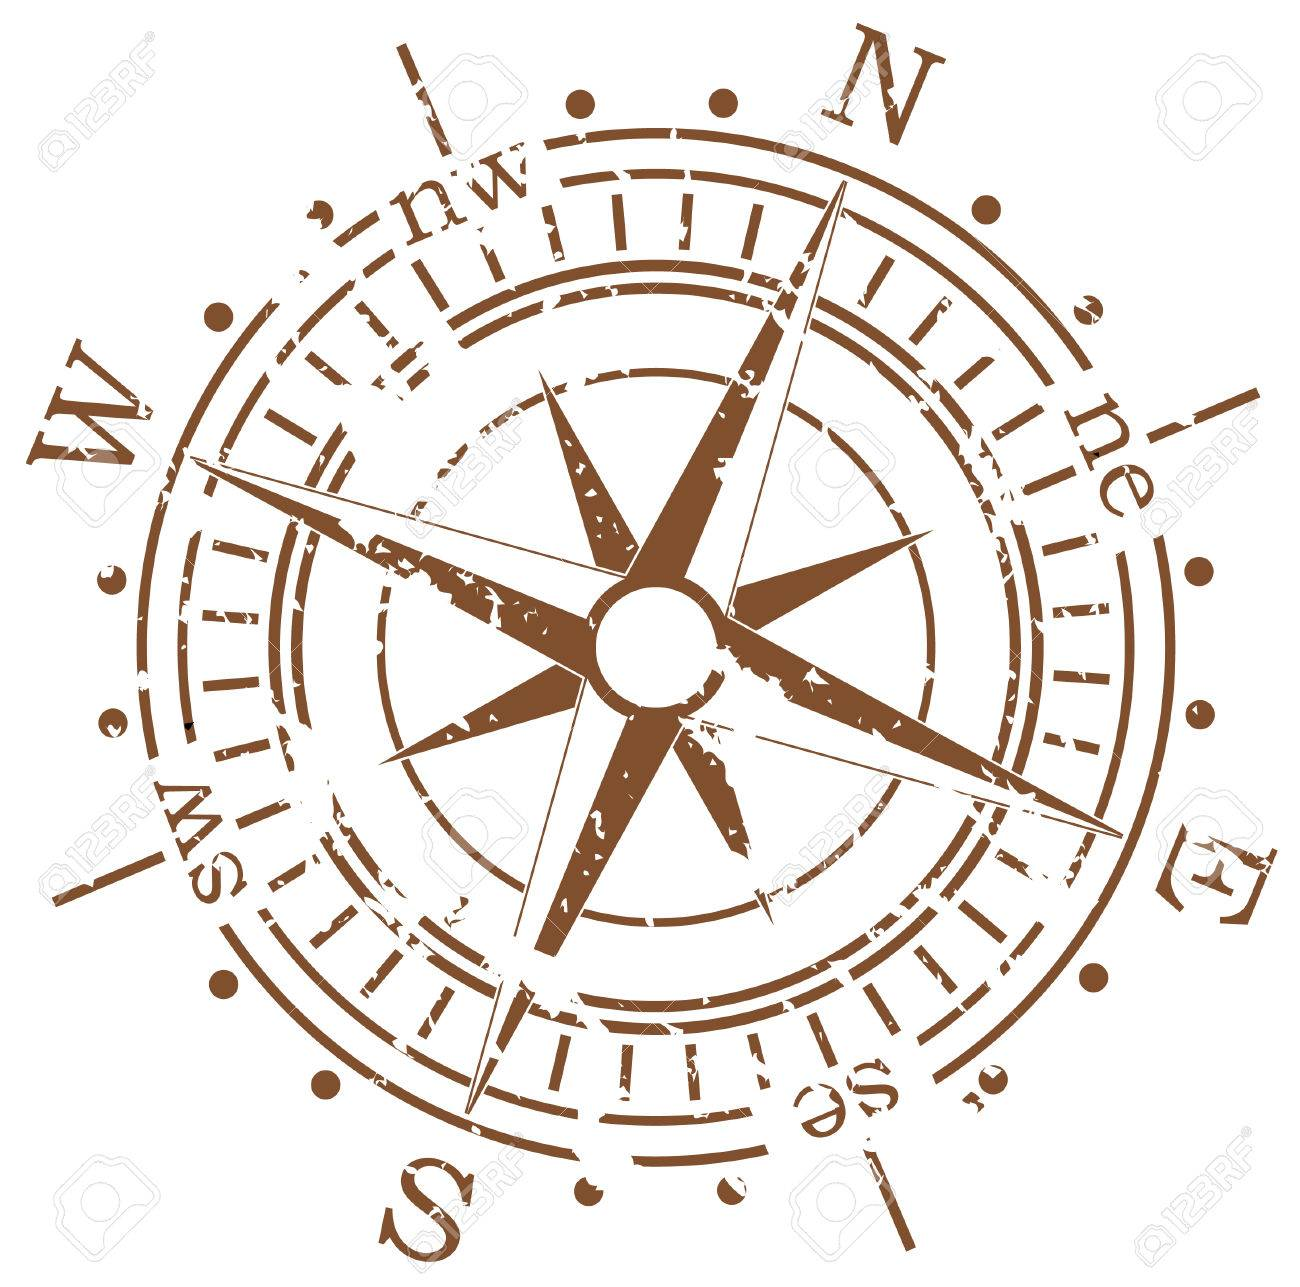 grunge vector compass royalty free cliparts vectors and stock